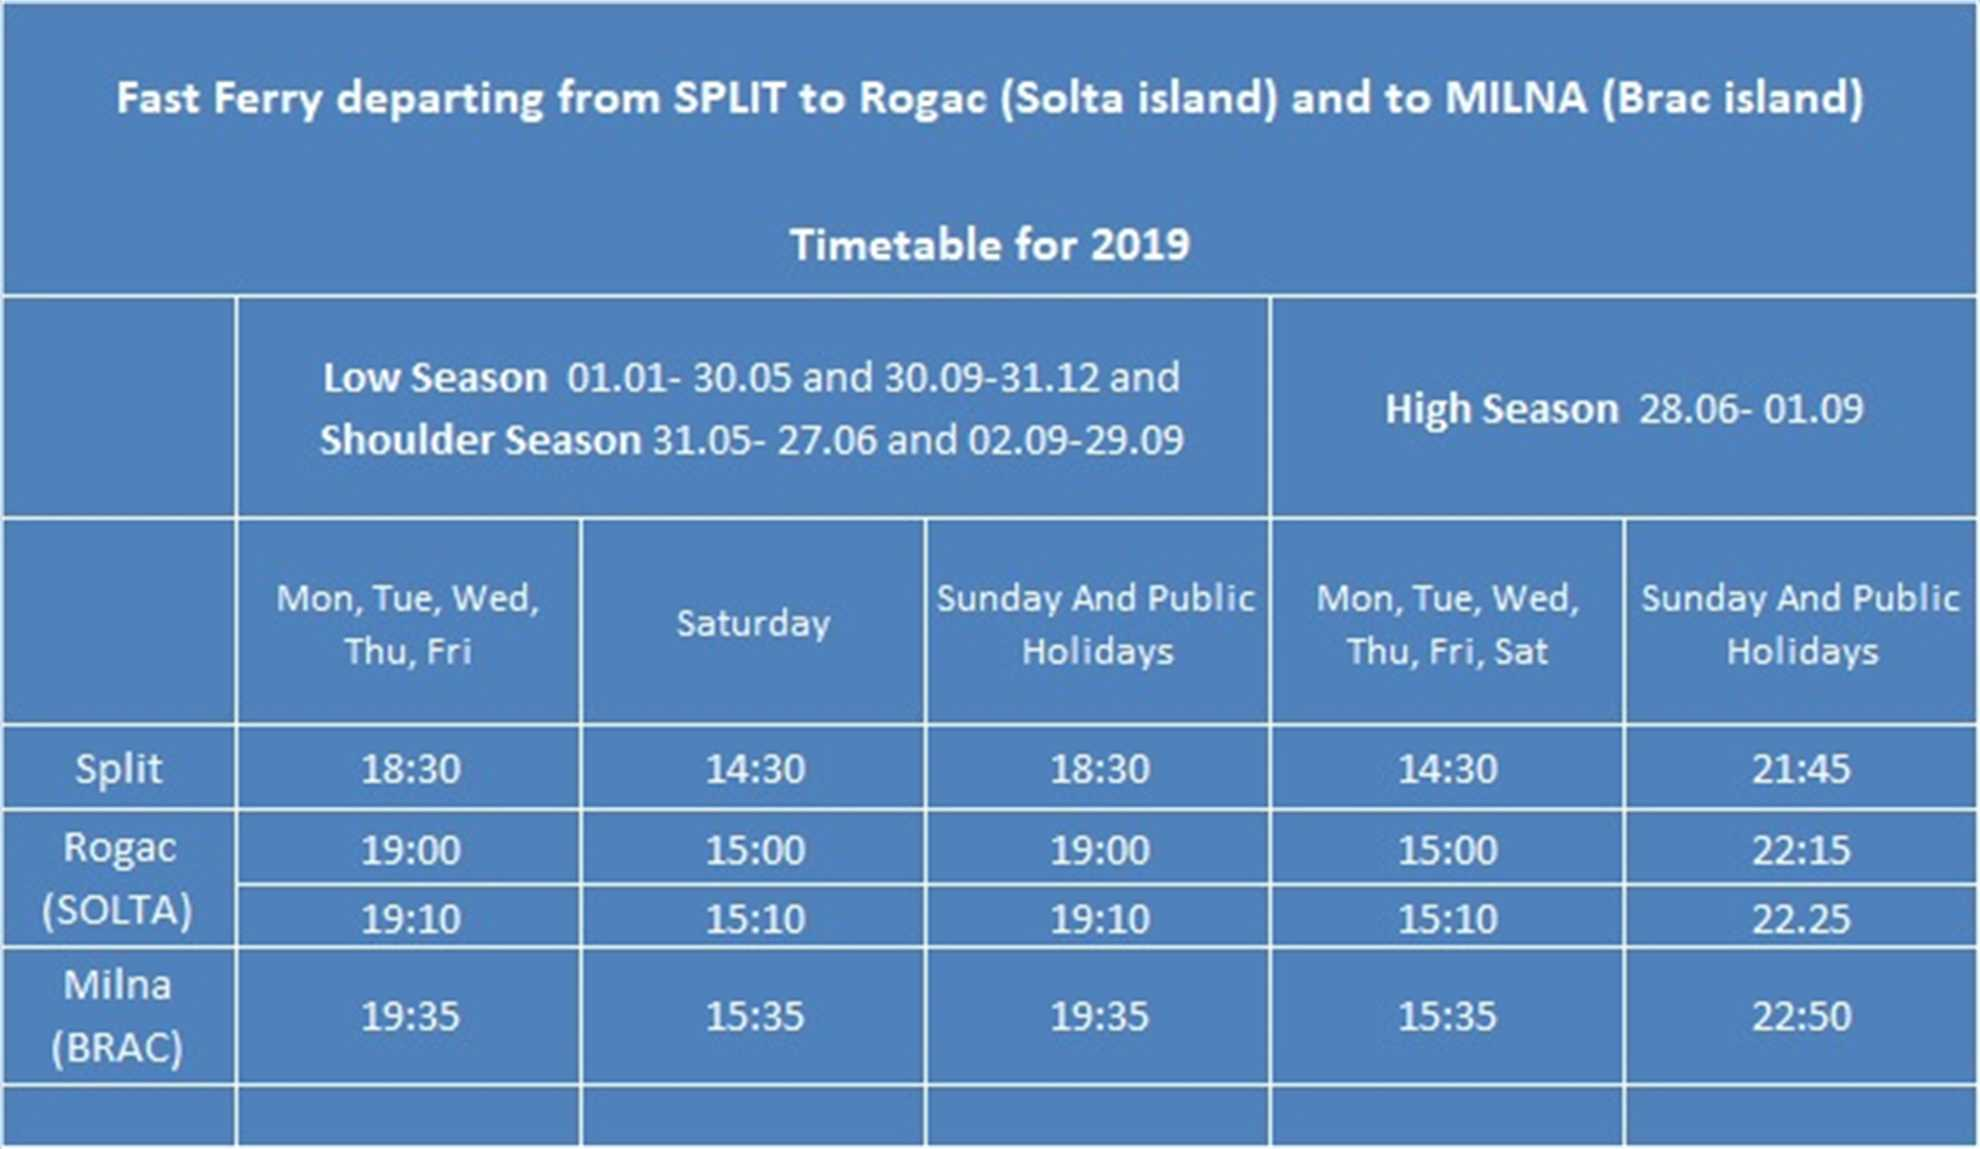 The fast ferry line connecting Split (mainland) and Milna (Brac Island) The timetable for the fast ferry from Split to Rogac (Solta) and to Milna (Brac)  in 2019